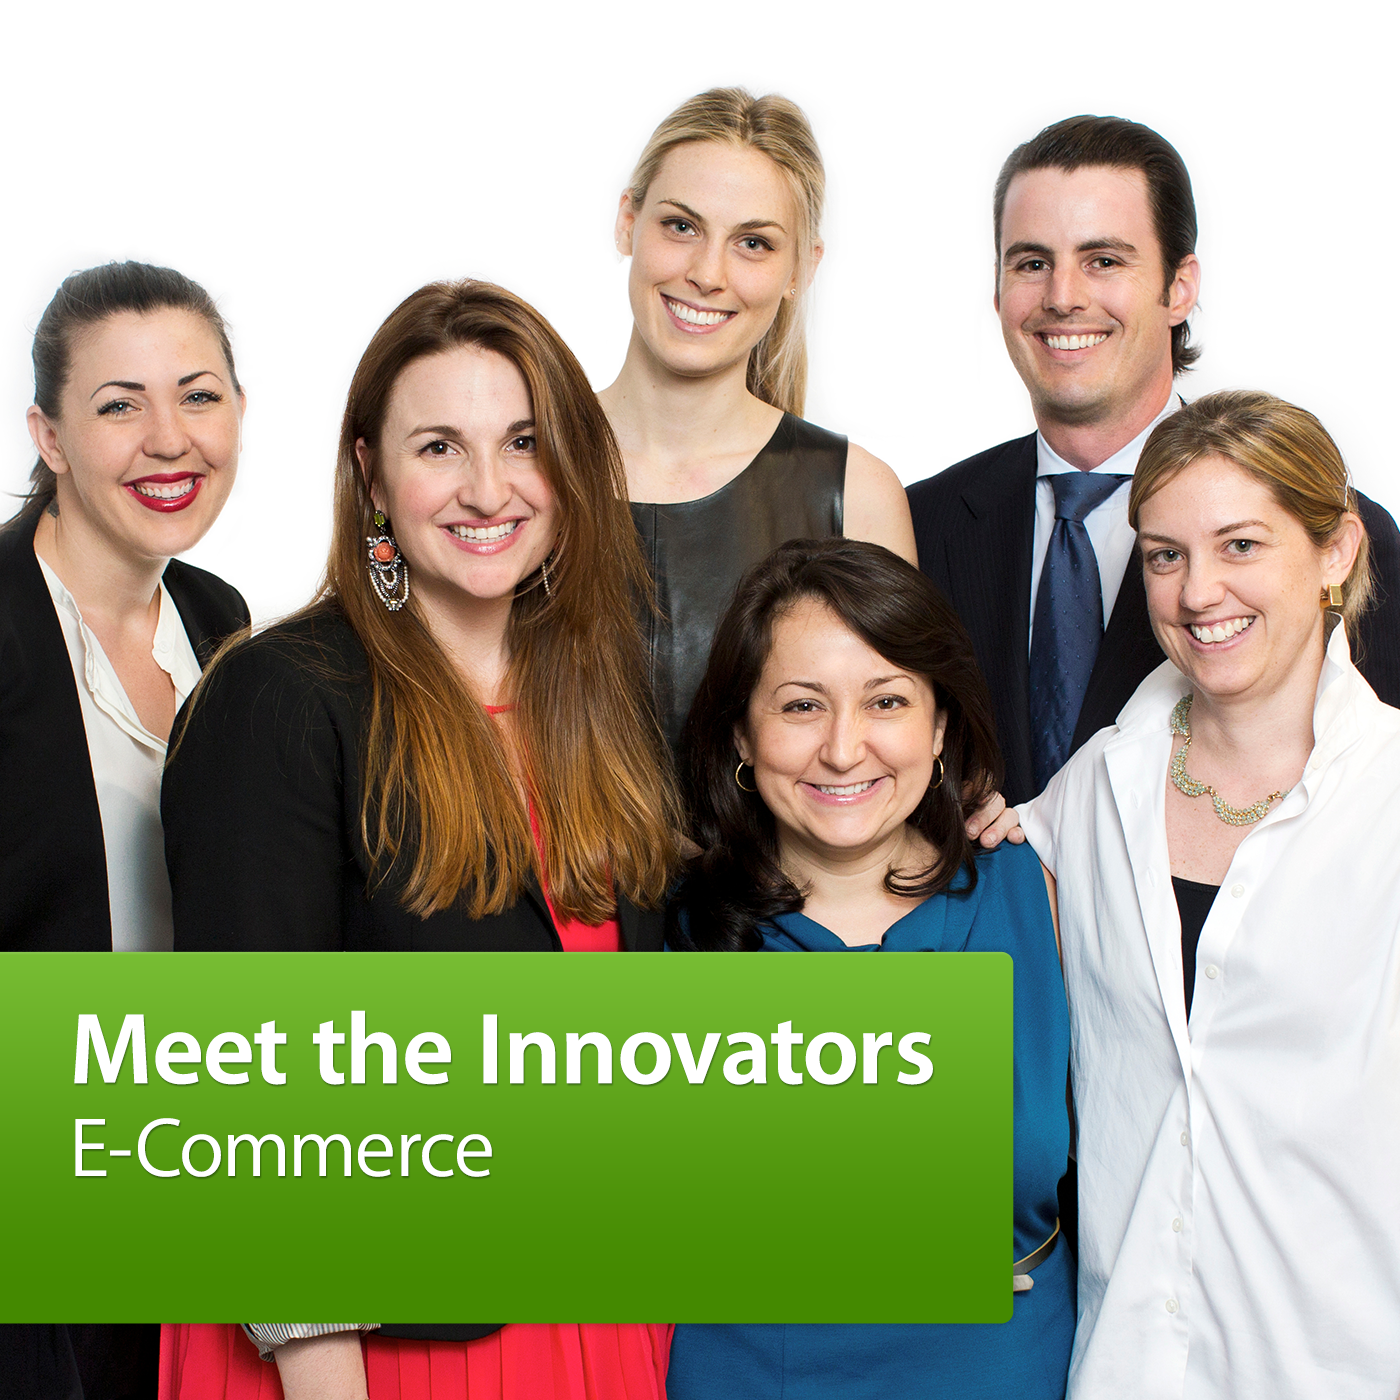 Meet the Innovators: E-Commerce